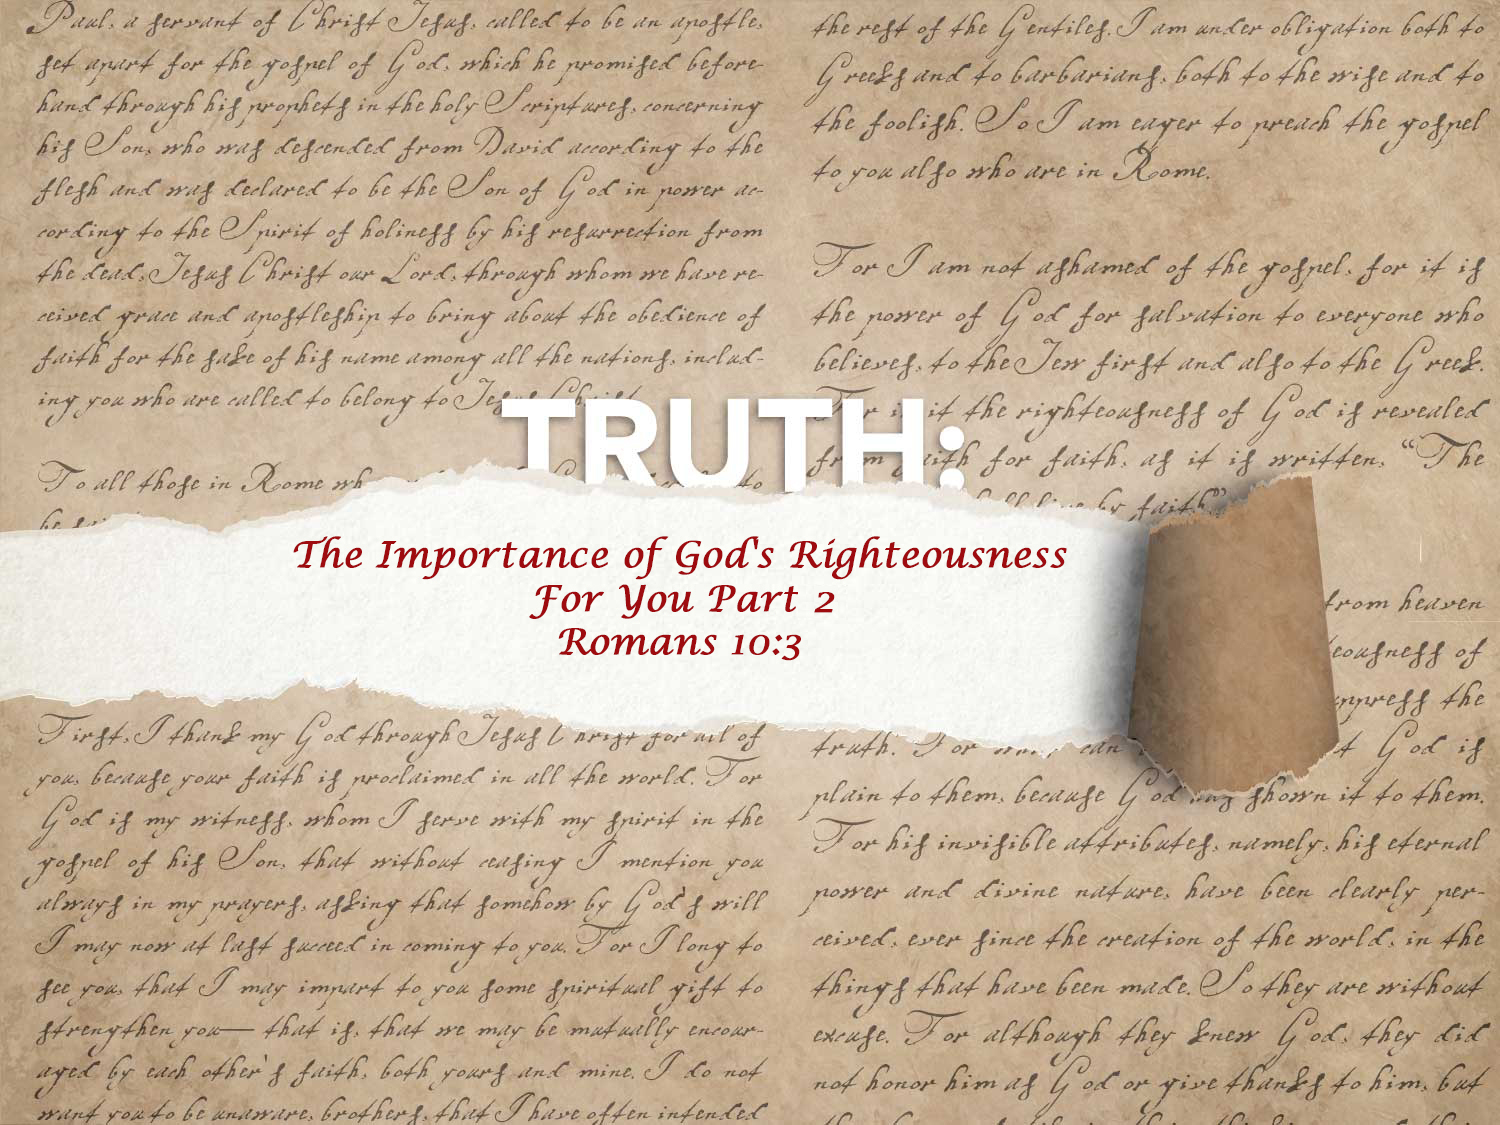 Romans 10:3 The Importance of God's Righteousness For You Part 2